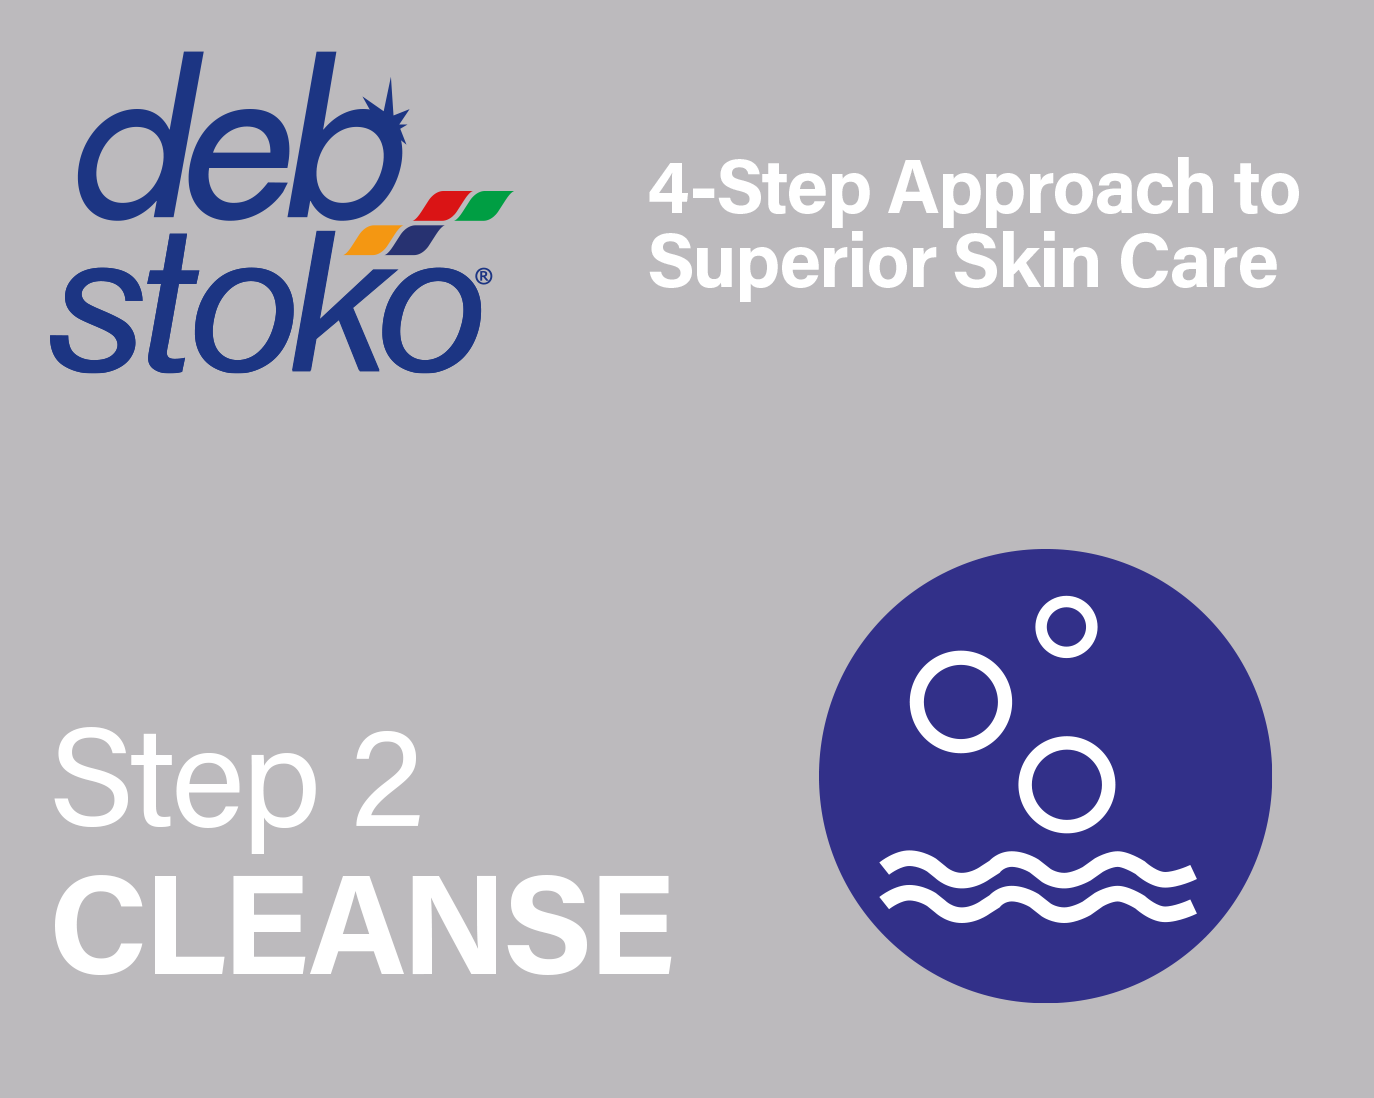 Step 2: Cleanse